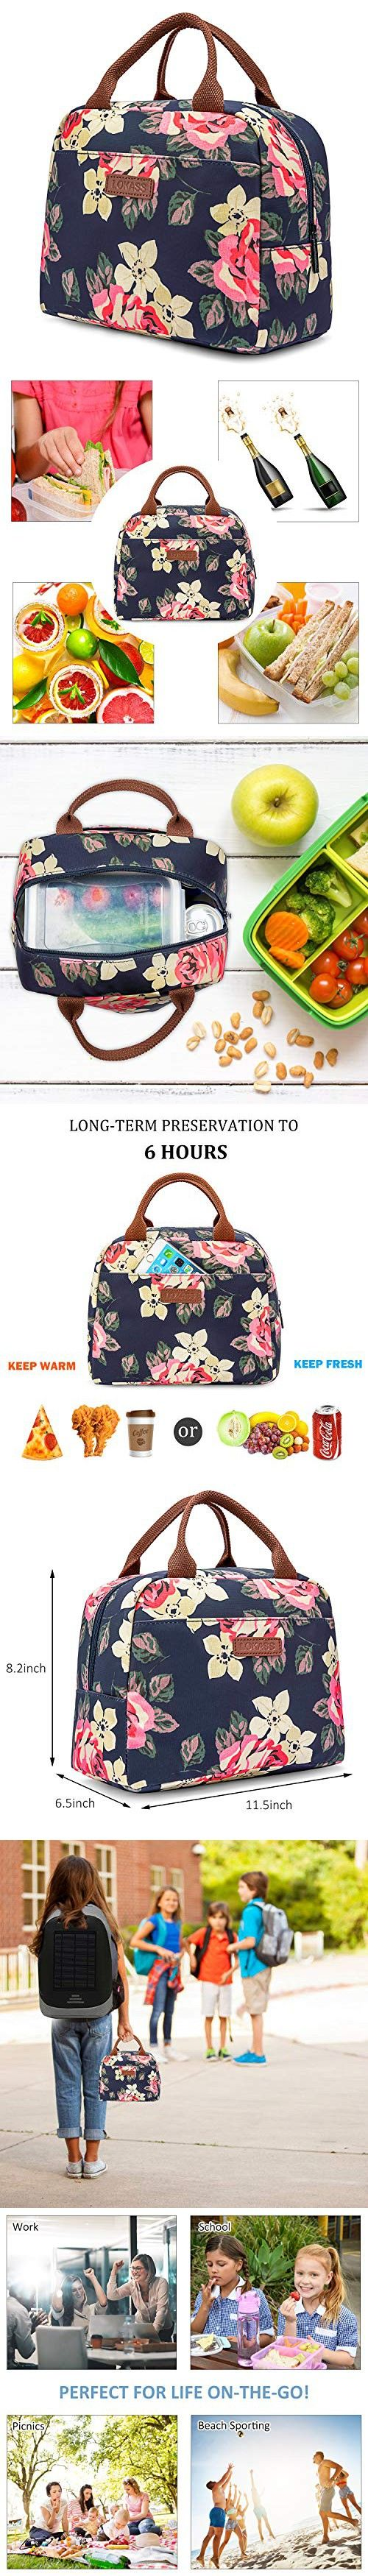 LOKASS Lunch Bag Cooler Bag Women Tote Bag Insulated Lunch Box Water-resistant Thermal Lunch Bag Soft Leak Proof Liner Lunch Bags for women//Picnic//Boating//Beach//Fishing//School//Work Peony